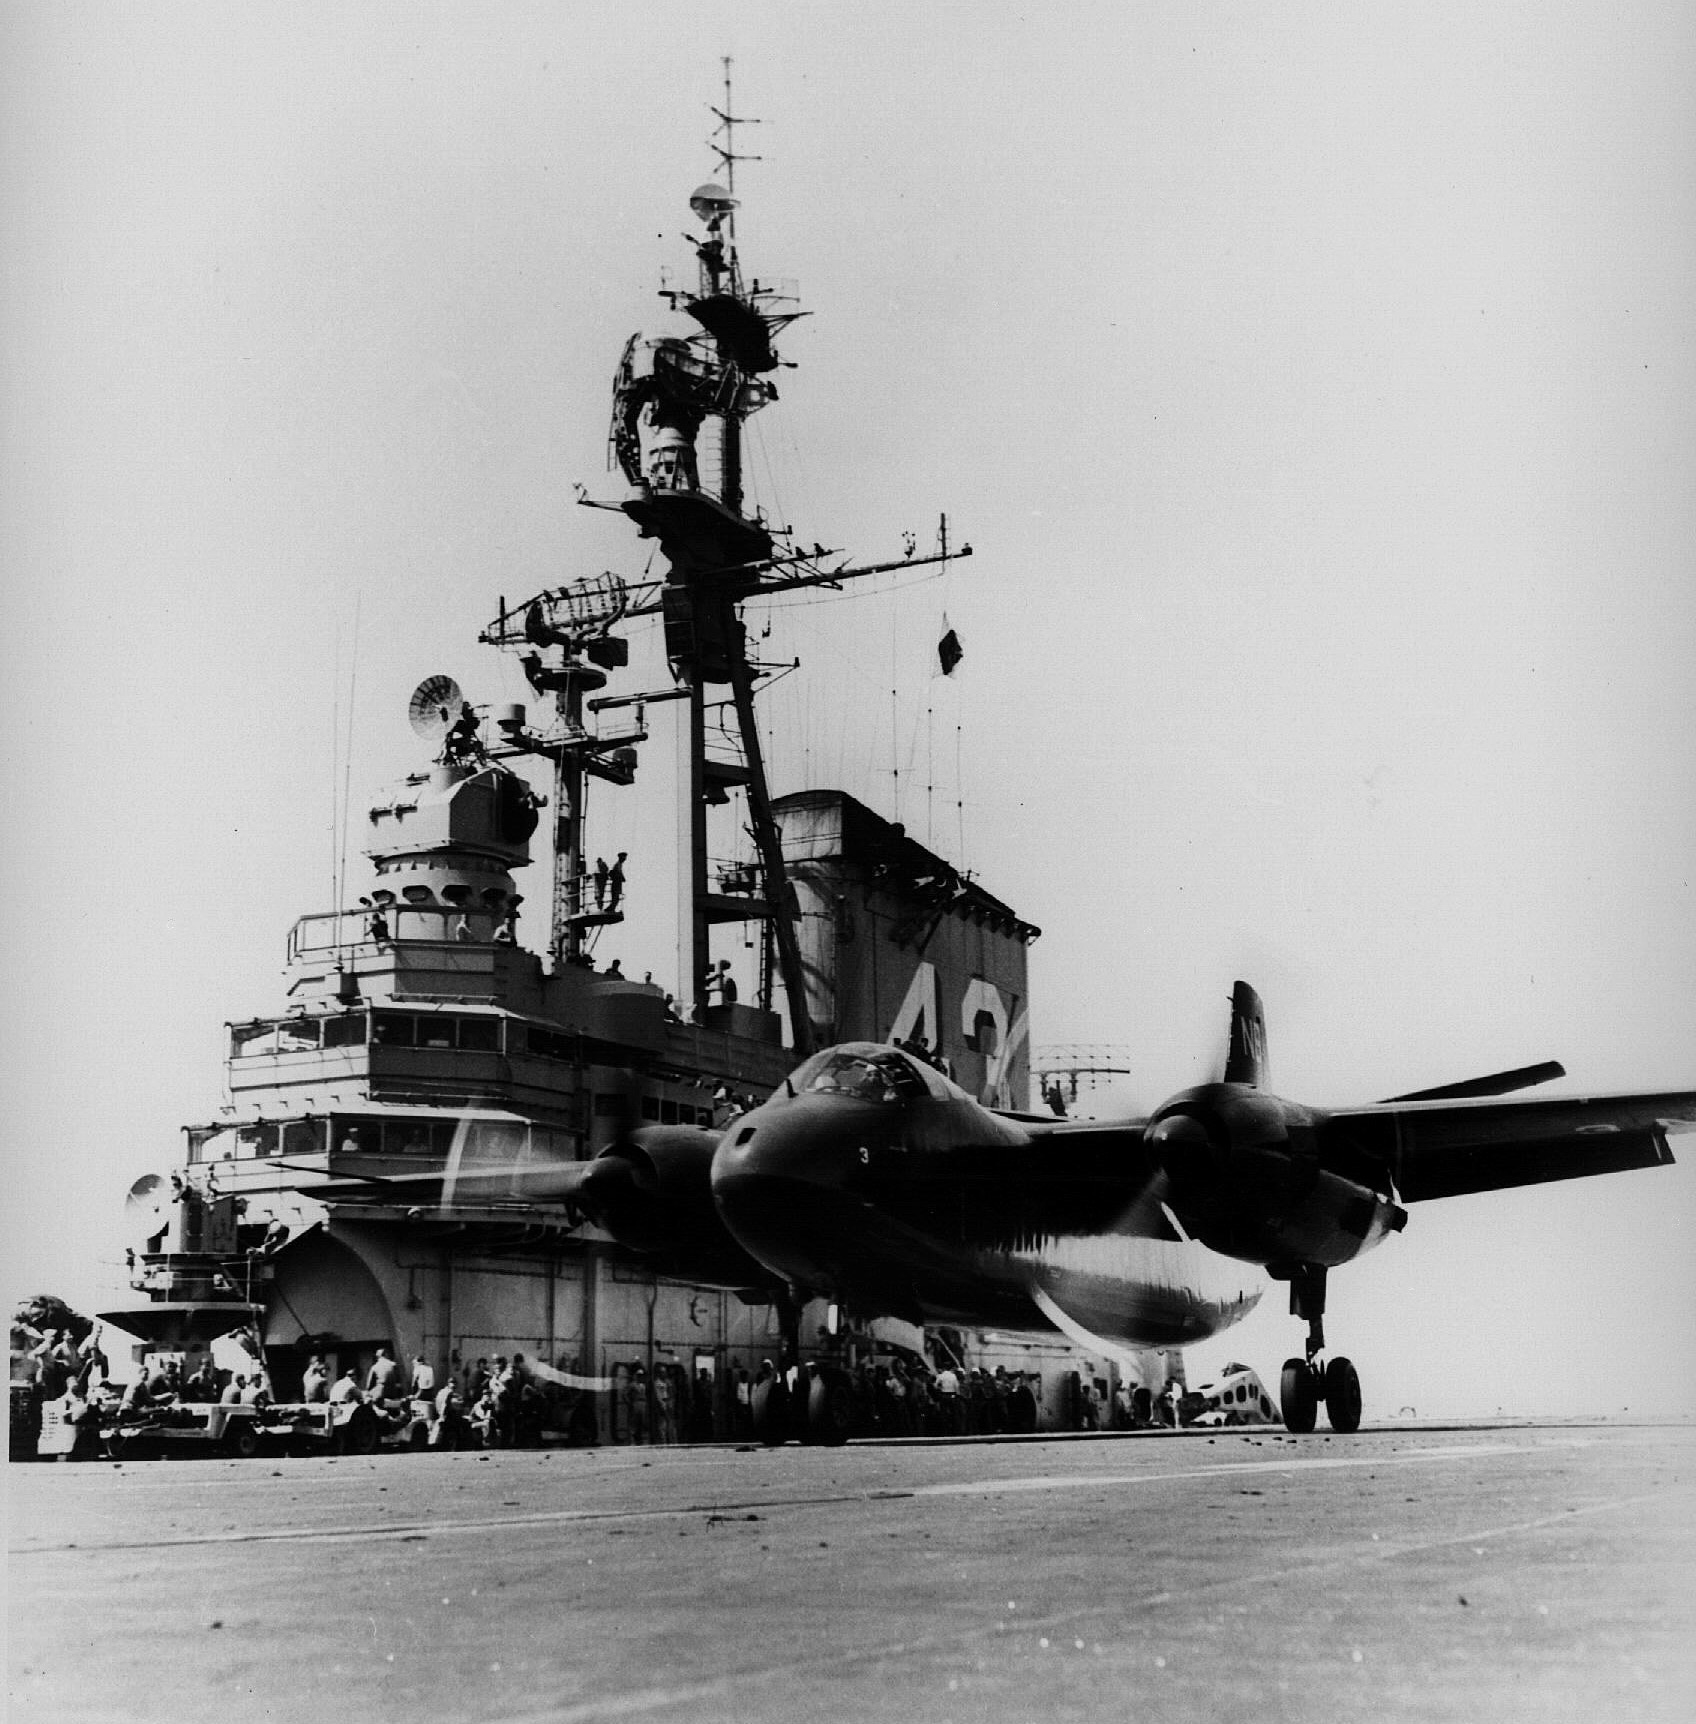 'Hi Resolution Photo Click Here' from the web at 'http://www.usscoralsea.net/images/cvb4342150first carrier launch of an AJ-1 Savage.jpg'